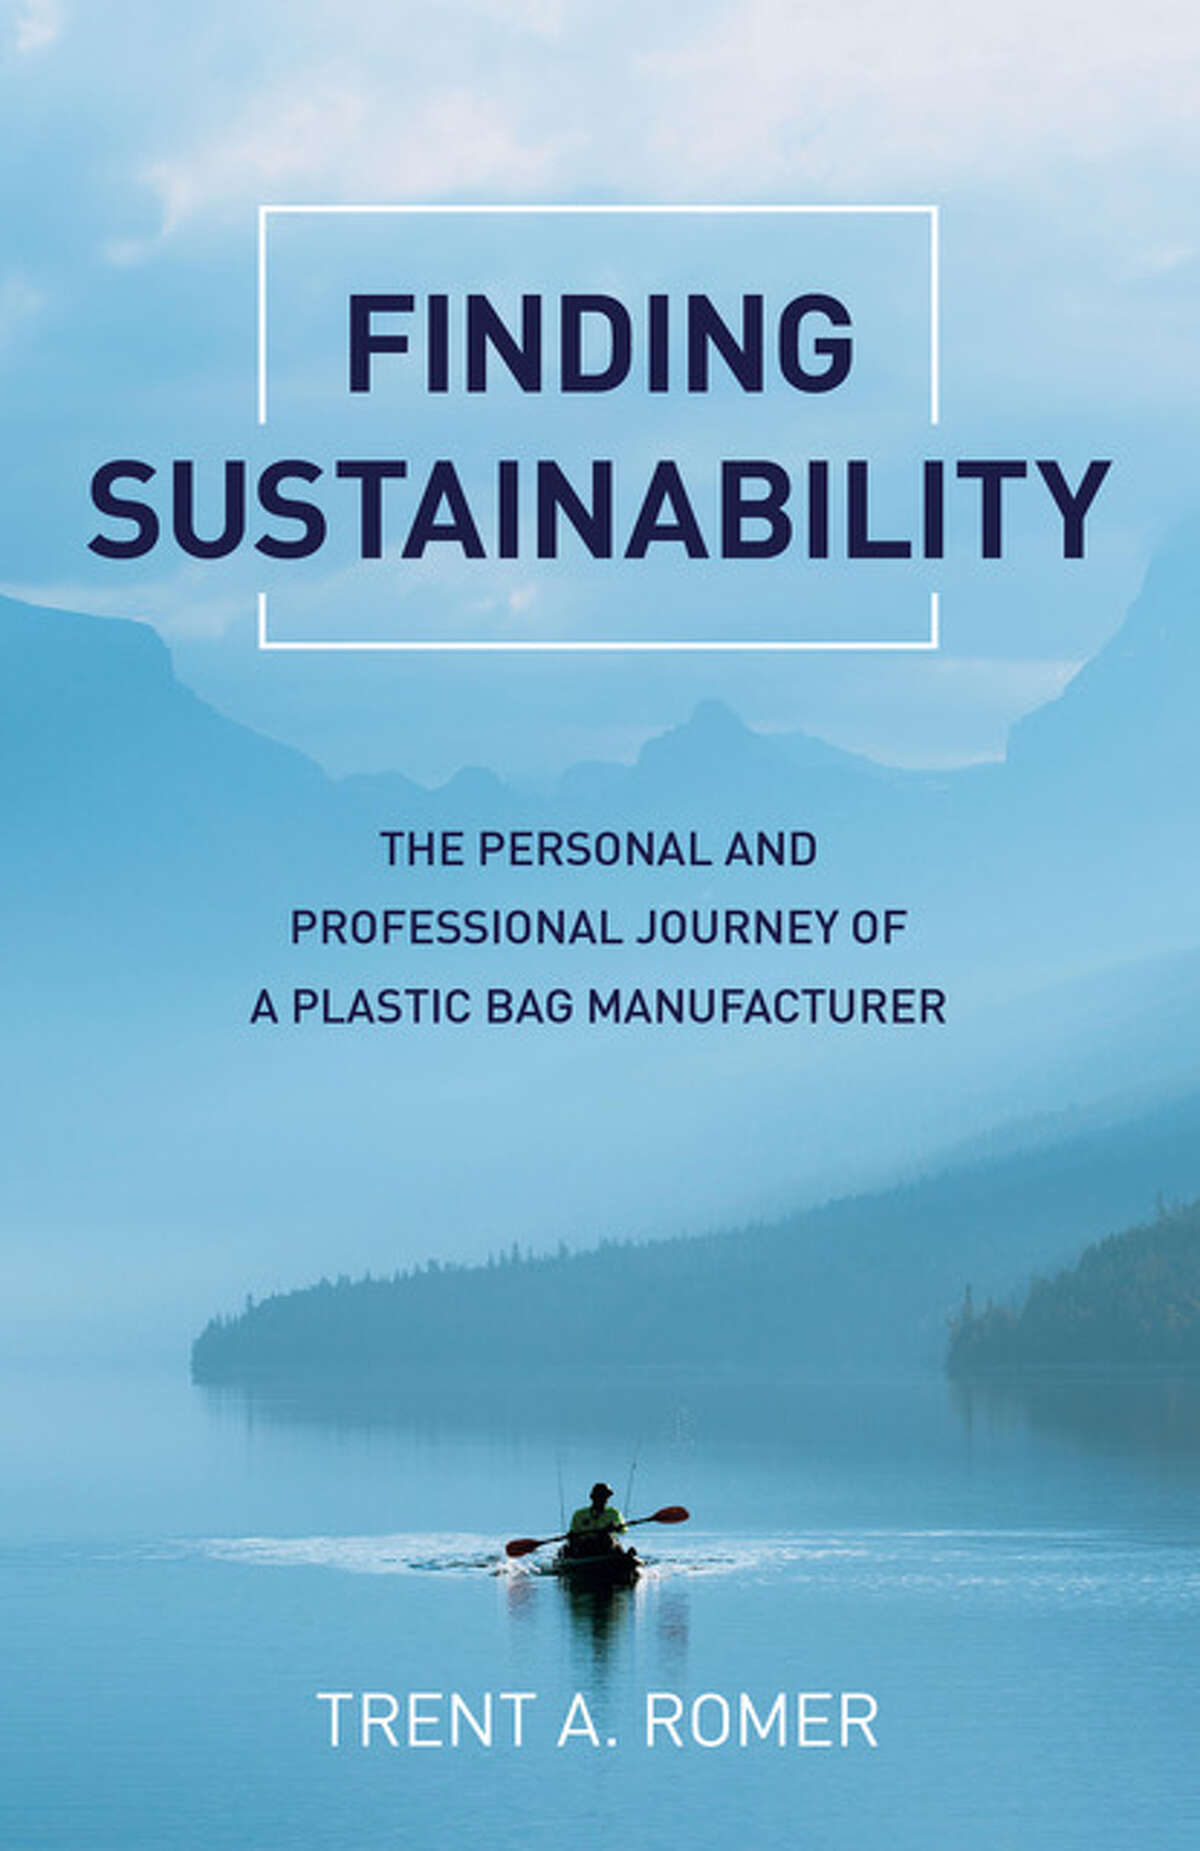 """Book cover for Trent A. Romer's """"Finding Sustainability: The Personal and Professional Journey of a Plastic Bag Manufacturer."""""""